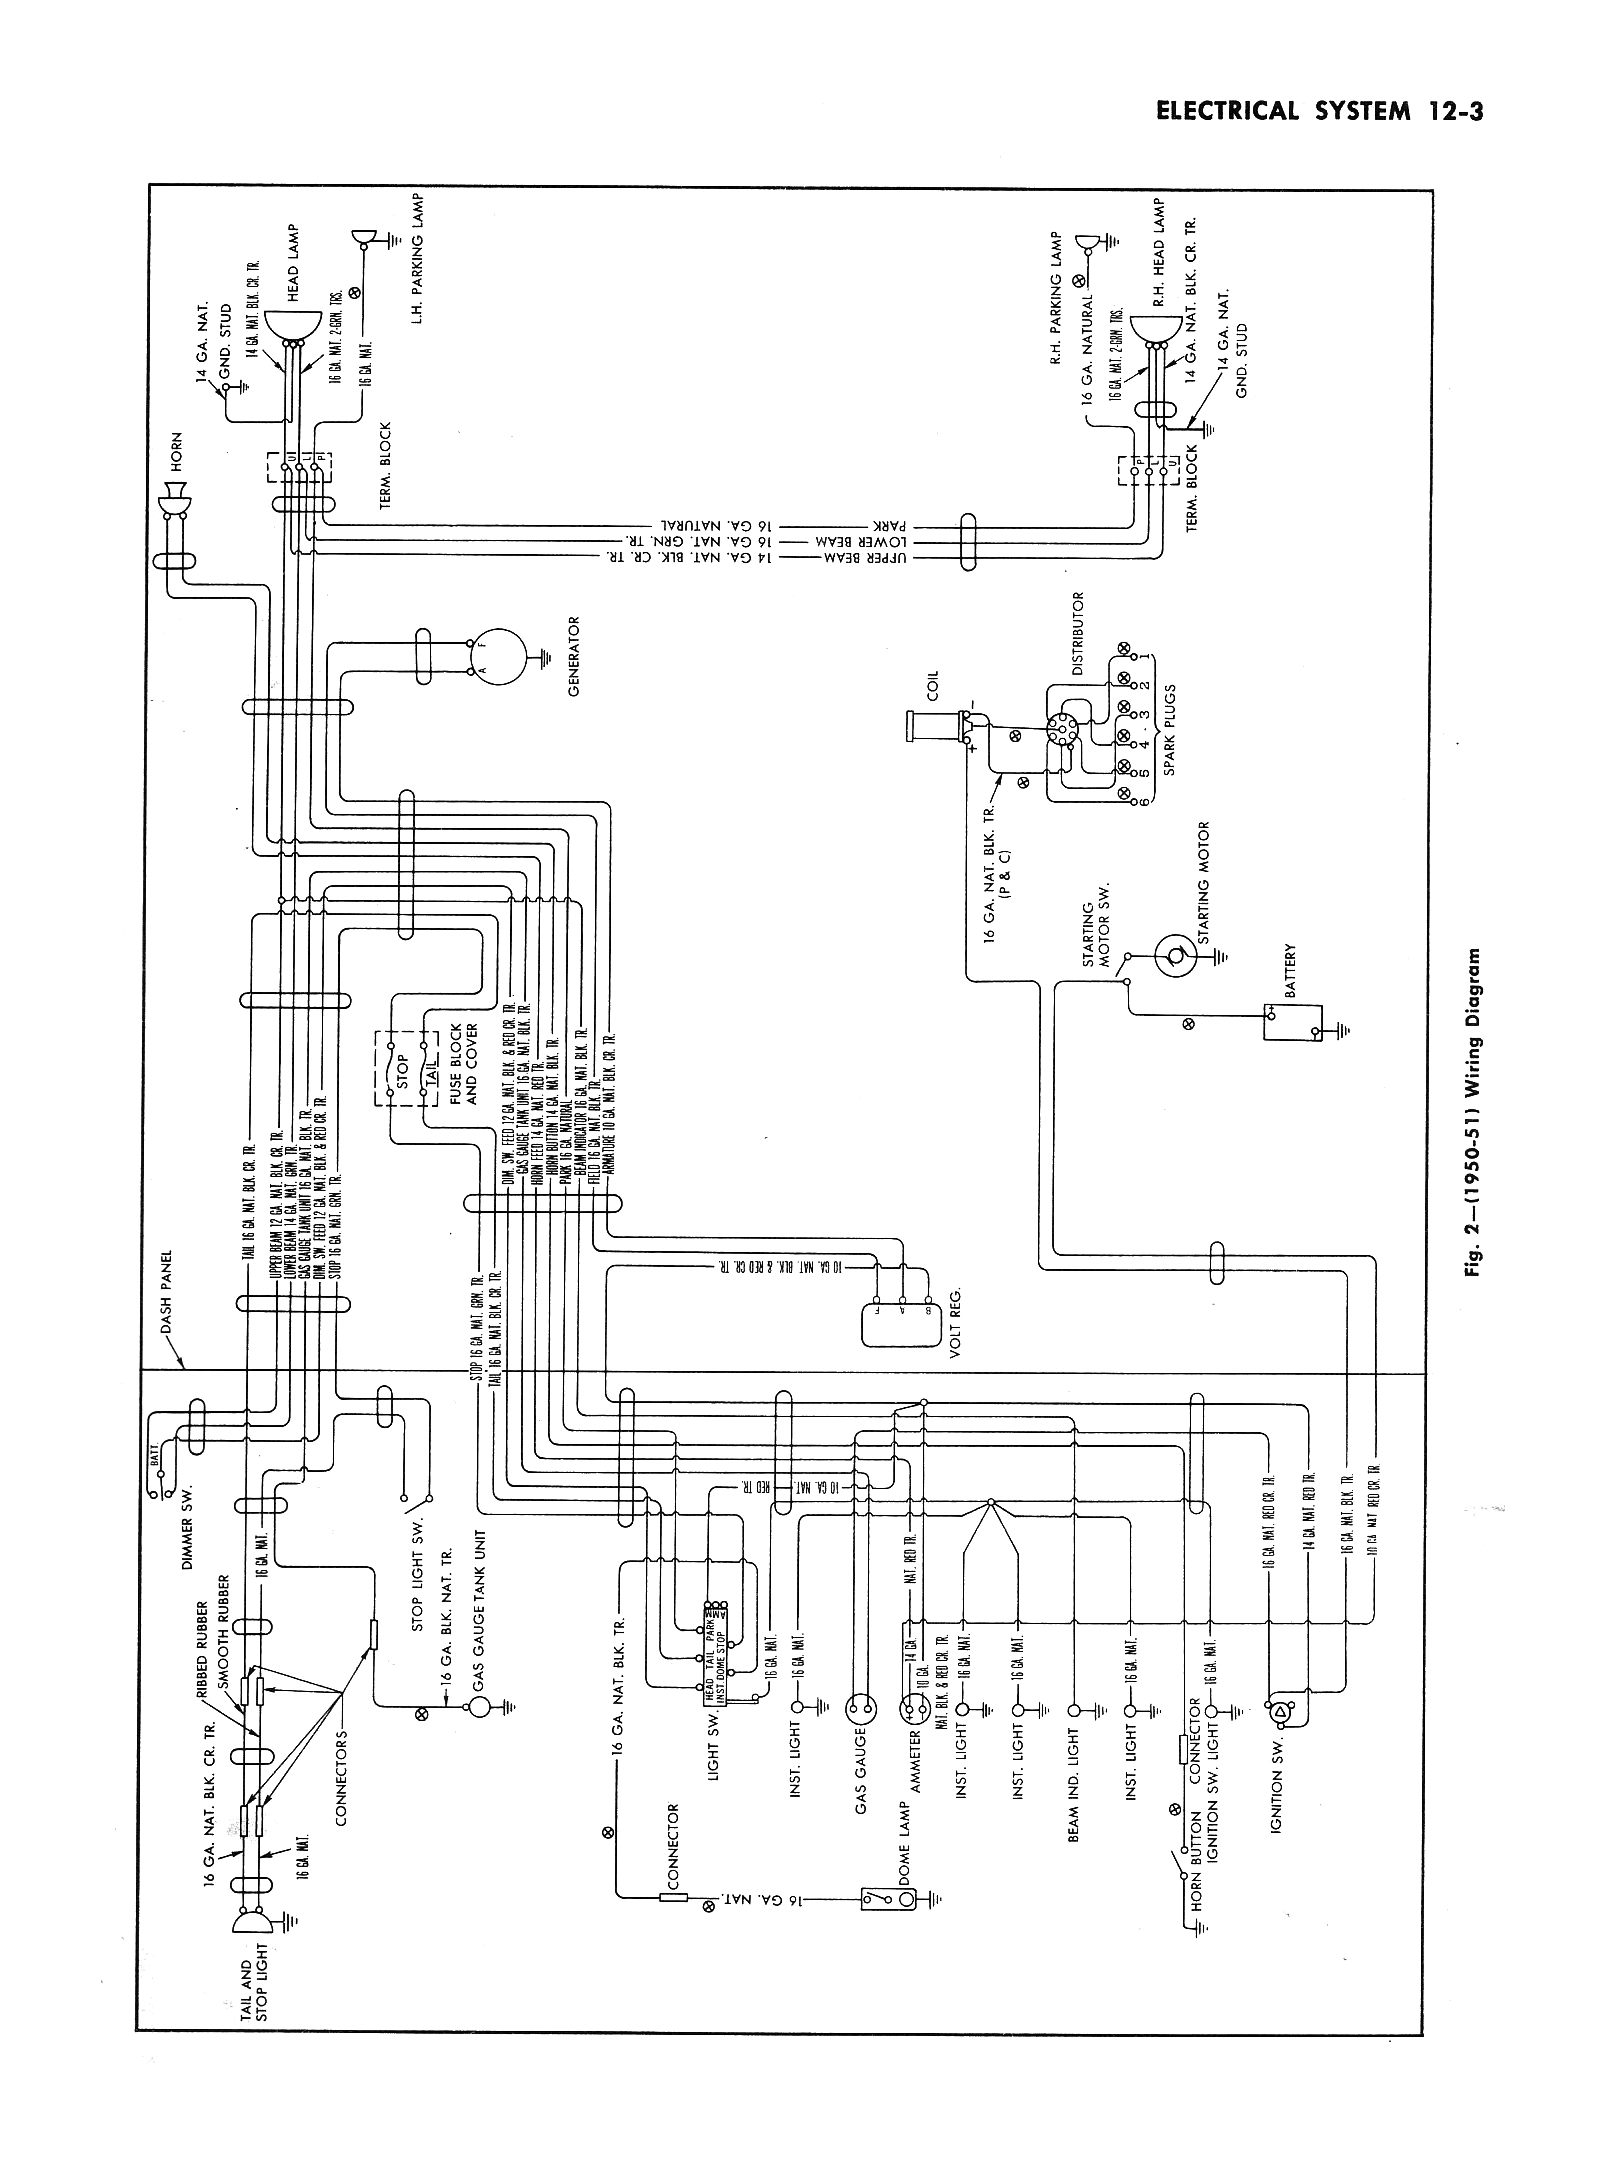 51 Chevy Wiring Diagram, 51, Get Free Image About Wiring